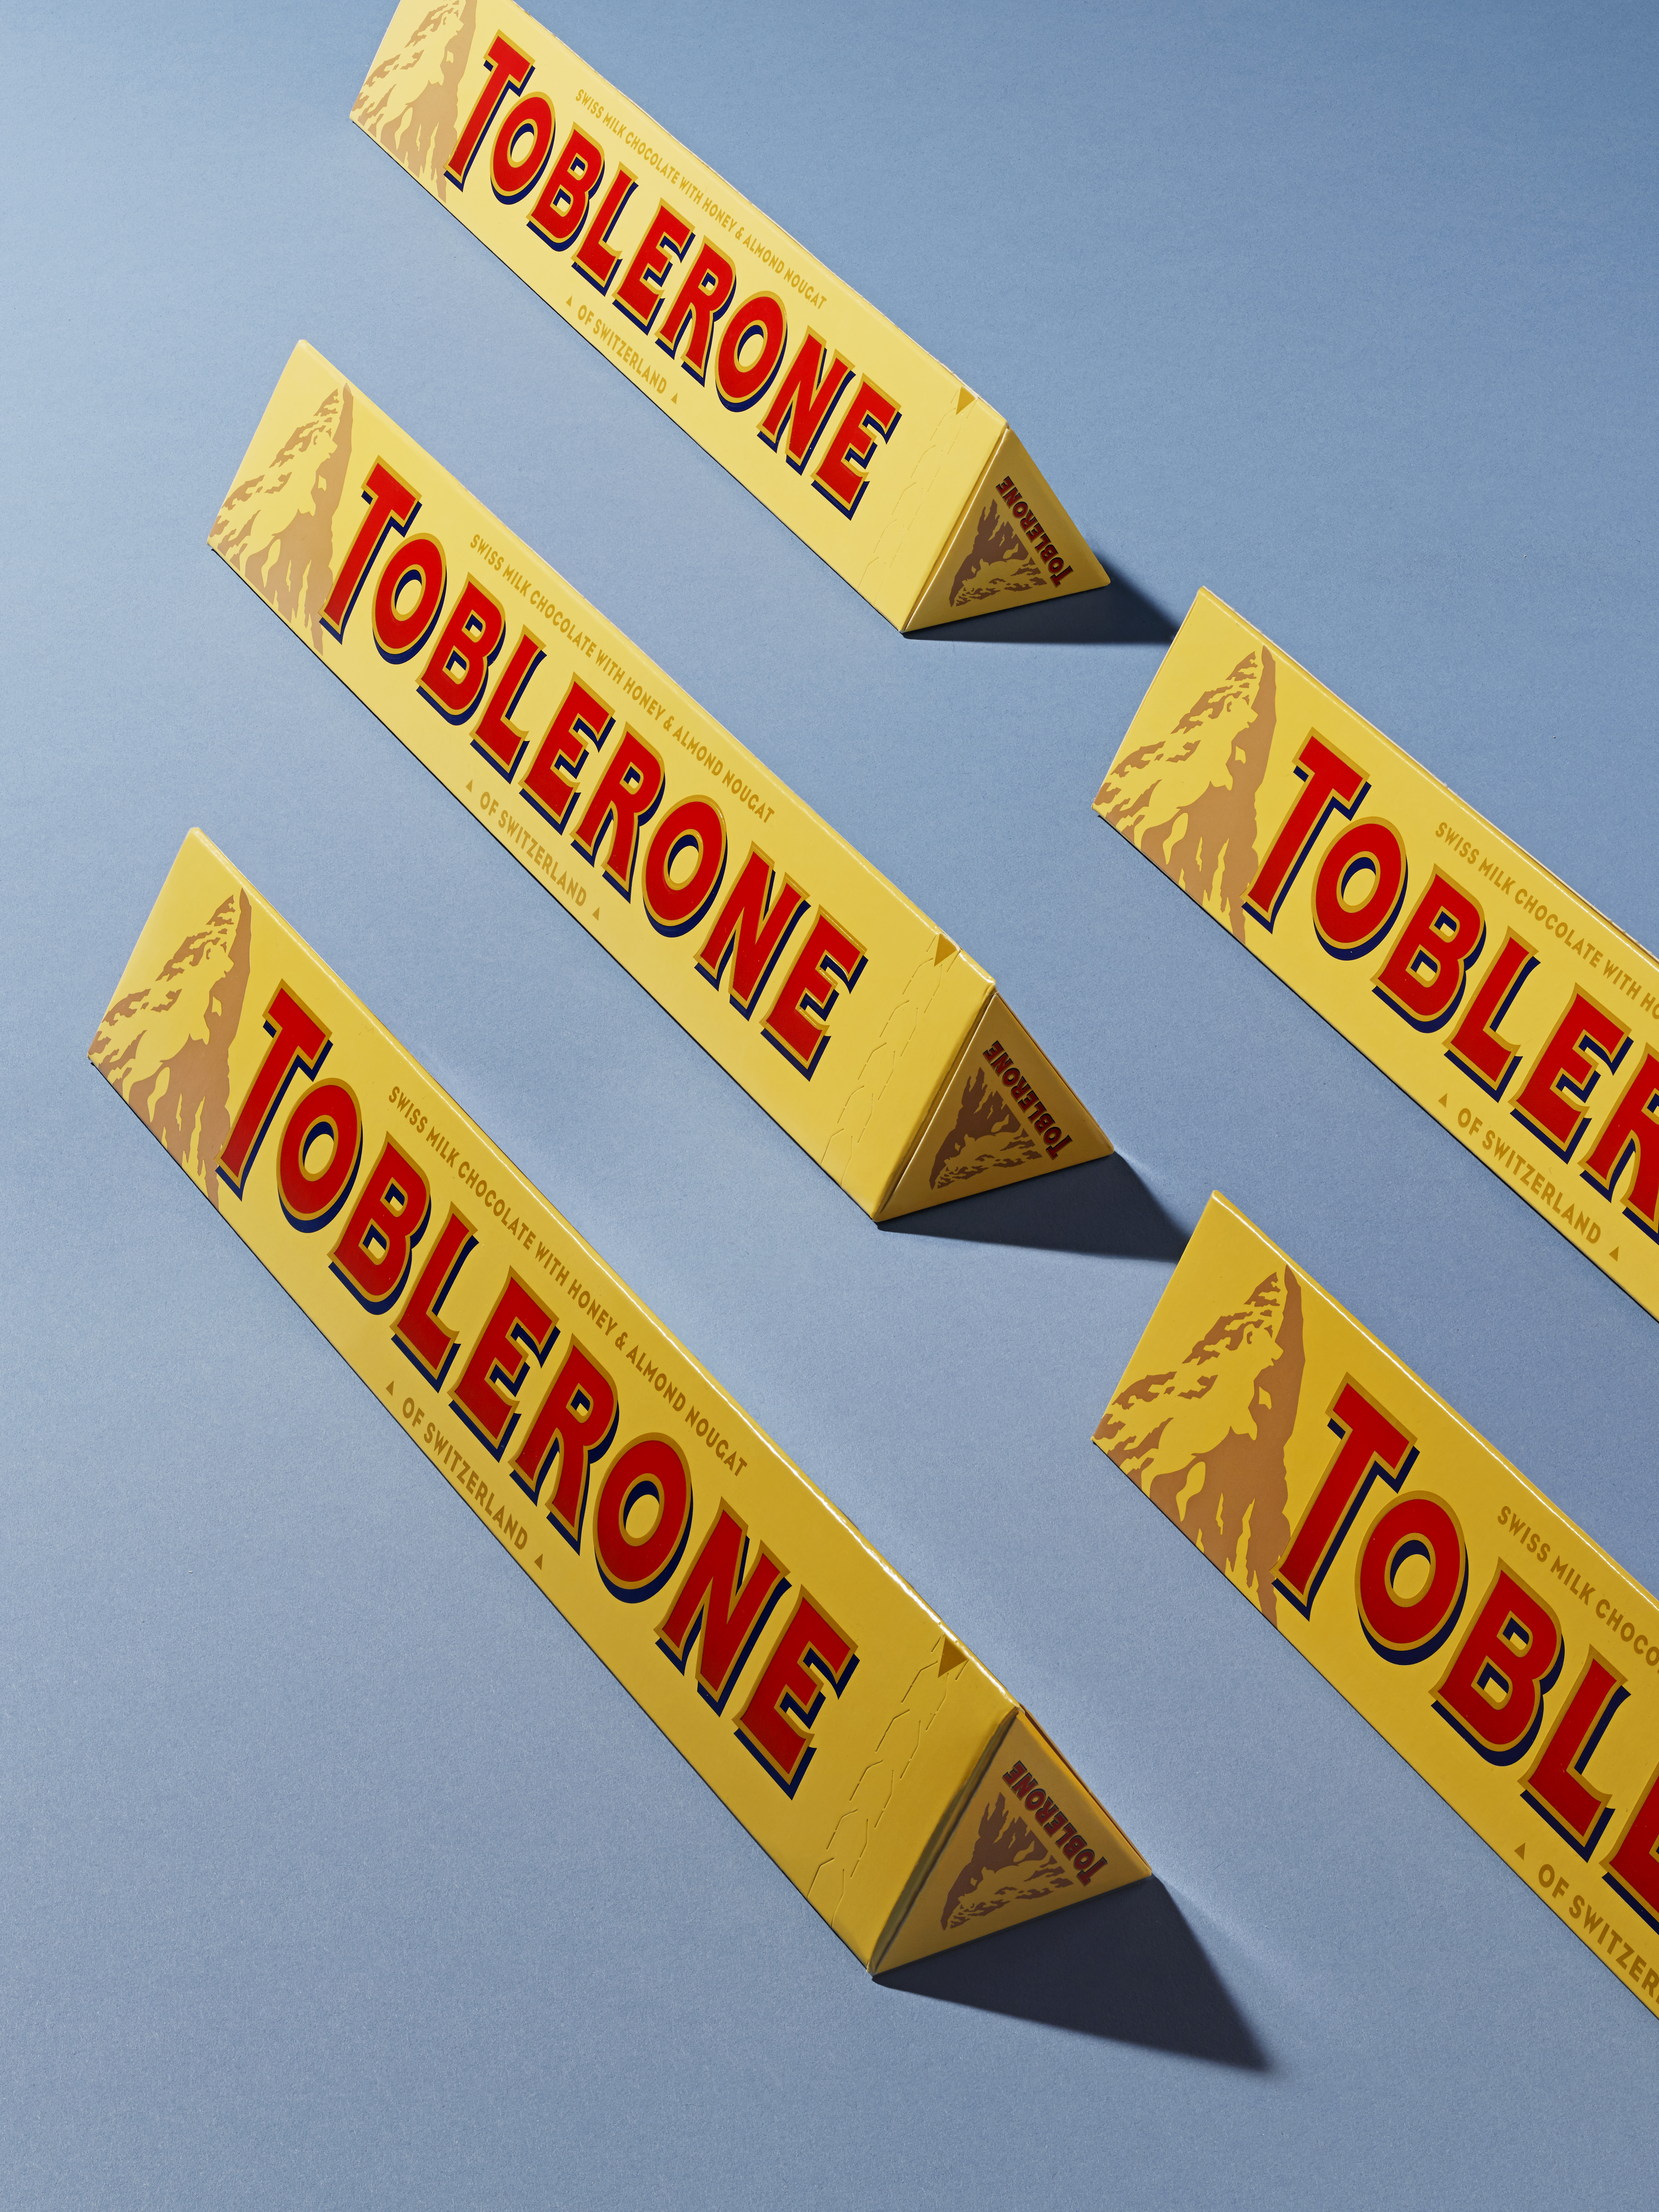 A close-up of multiple Toblerone bars showcasing their iconic triangular packaging